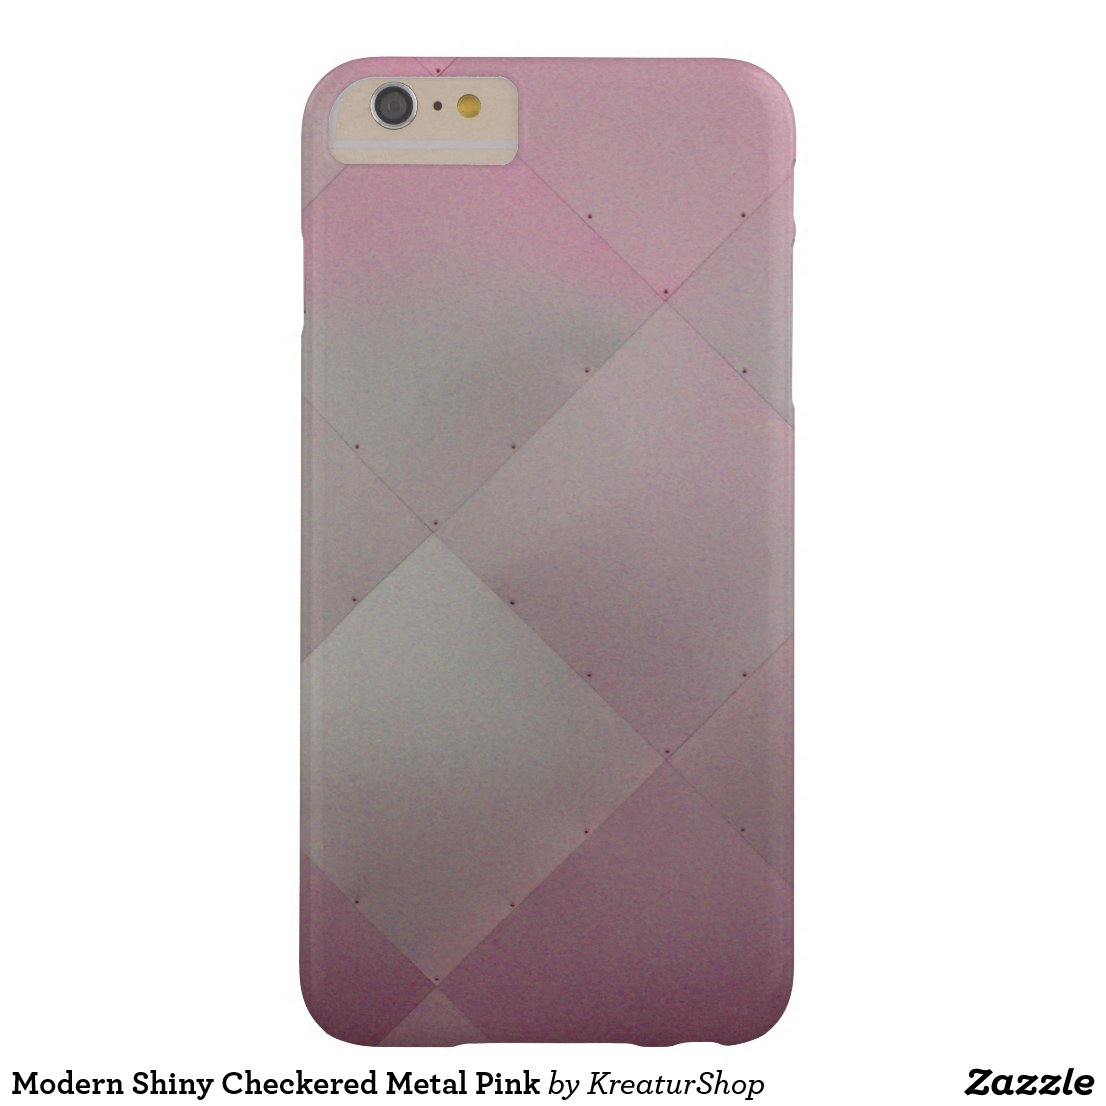 Modern Shiny Checkered Metal Pink